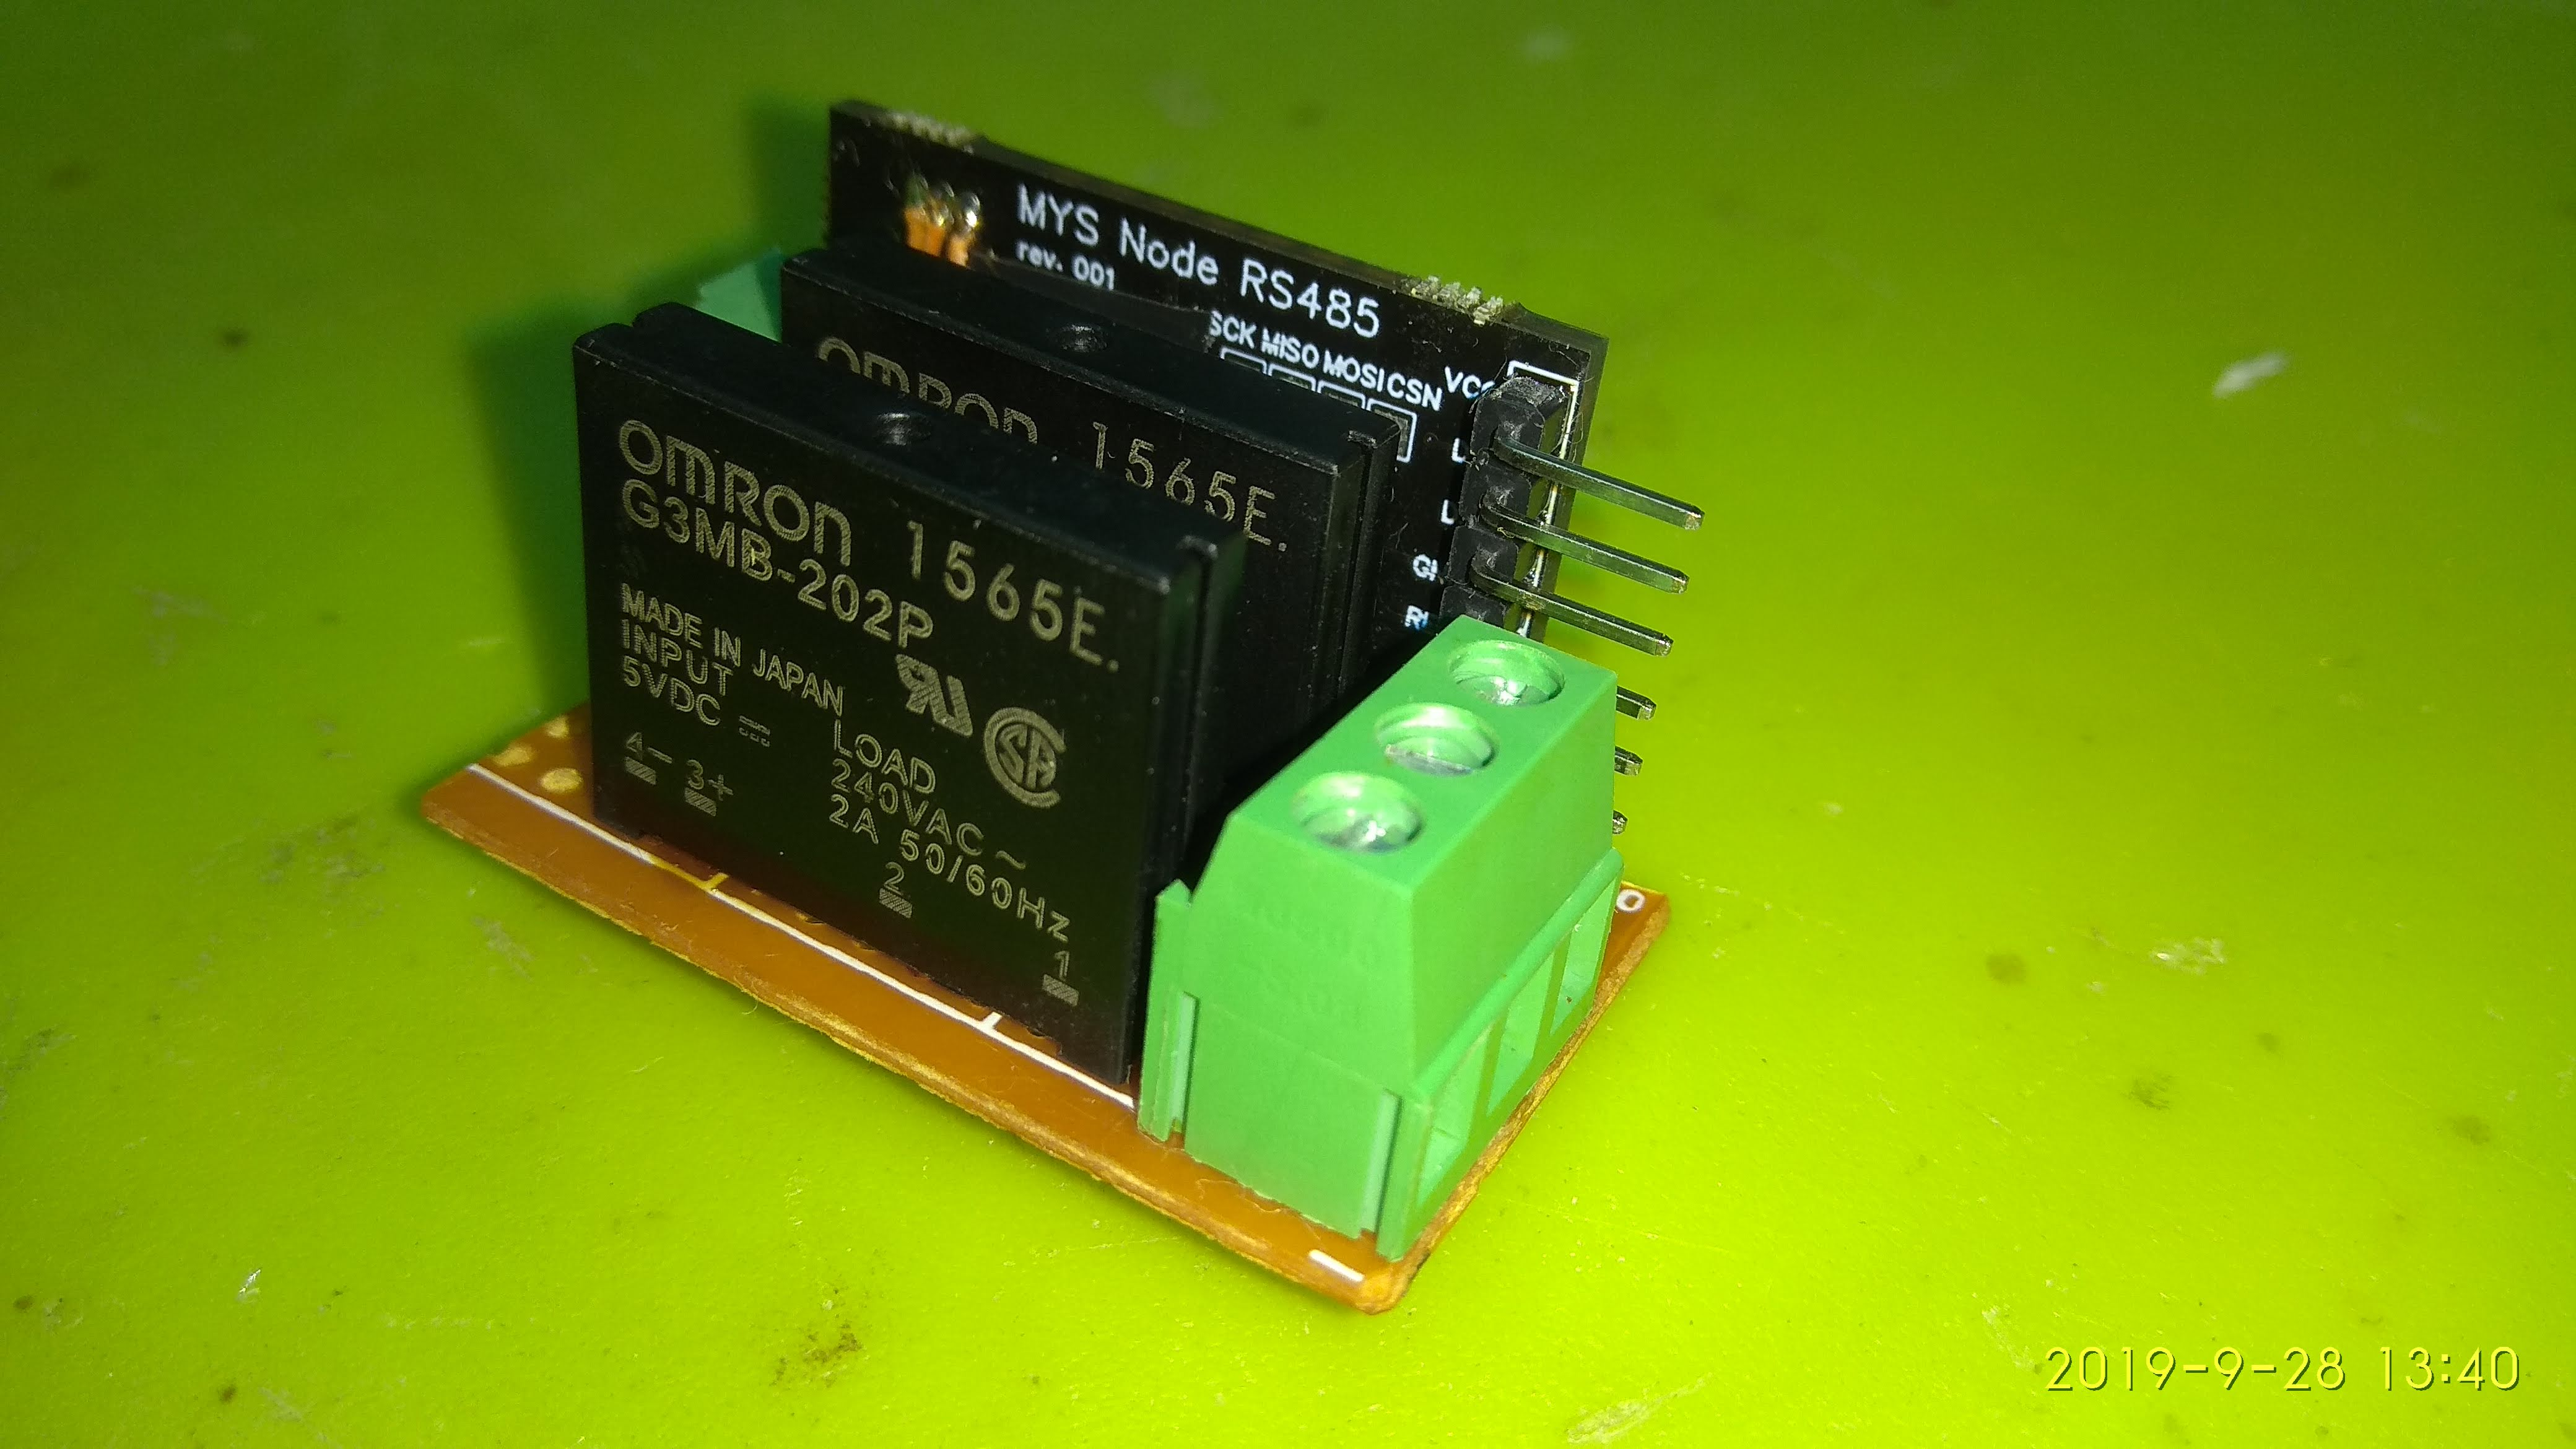 LIGHT module with RS485 node